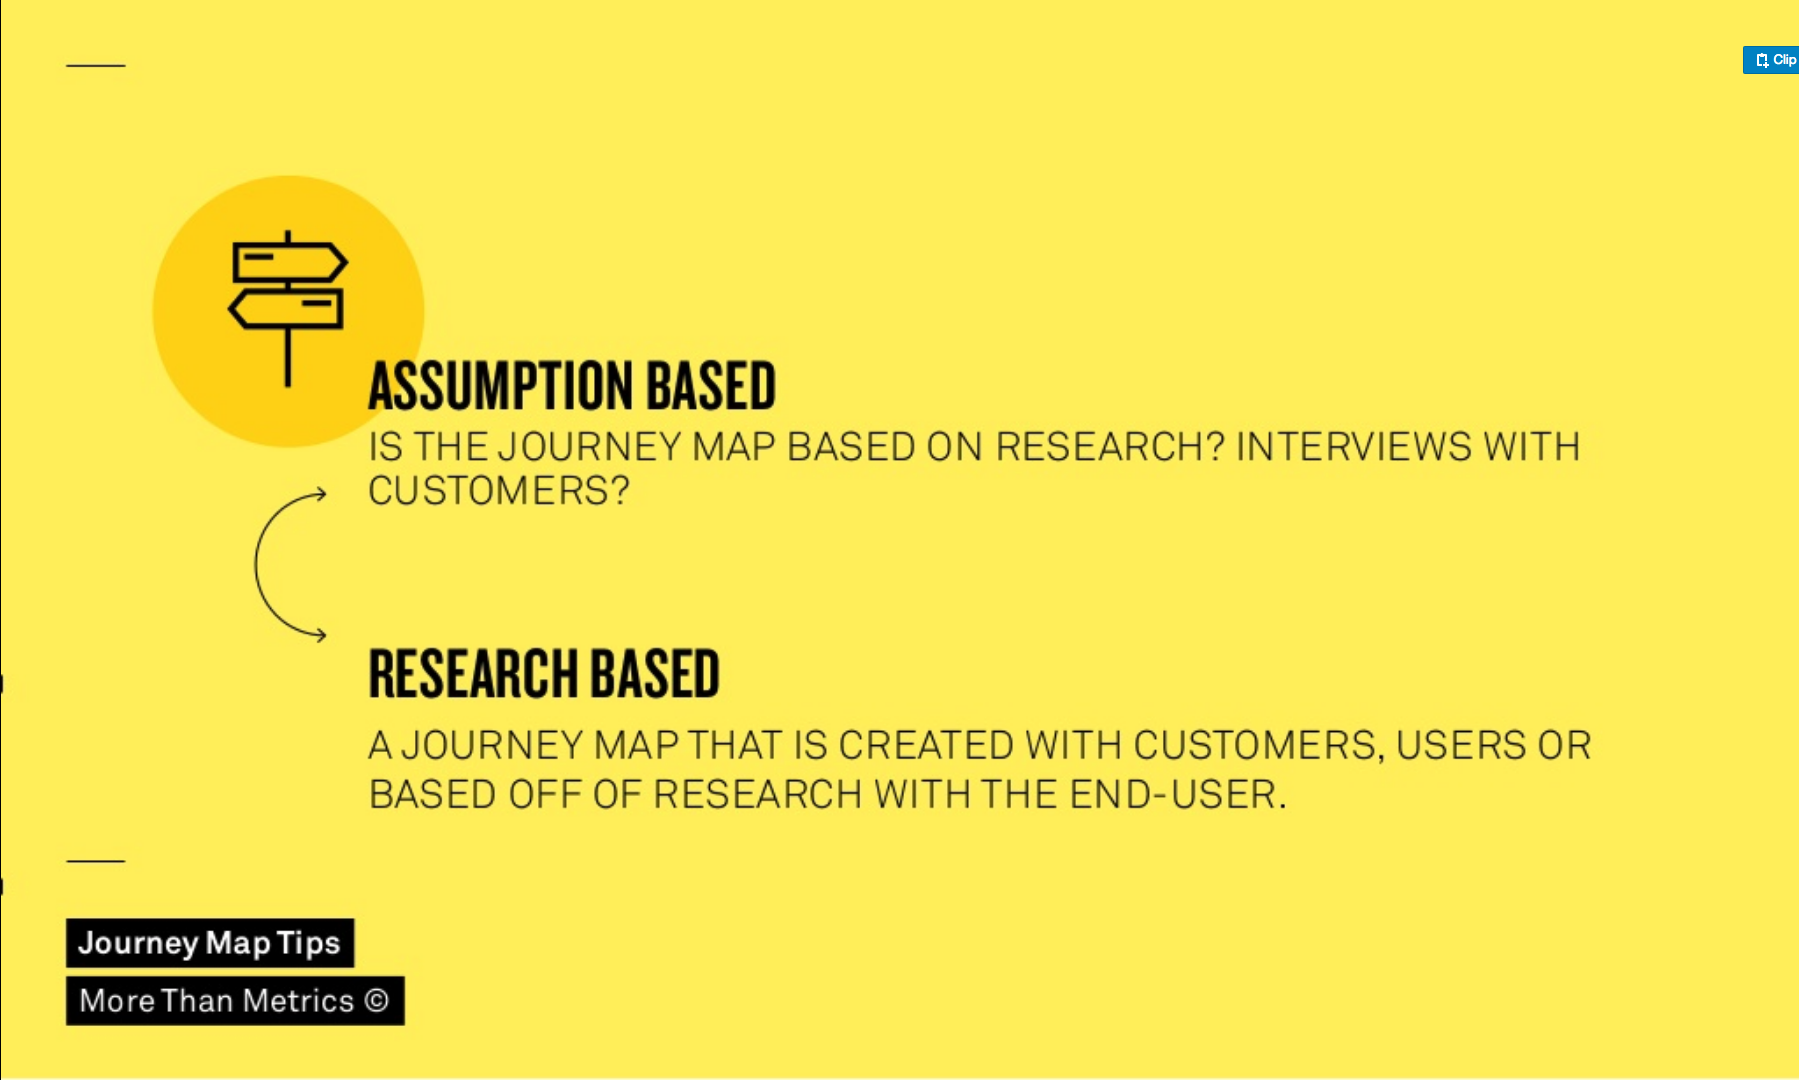 A journey map can be based on assumptions or on actual research with the customer, user or end-user.